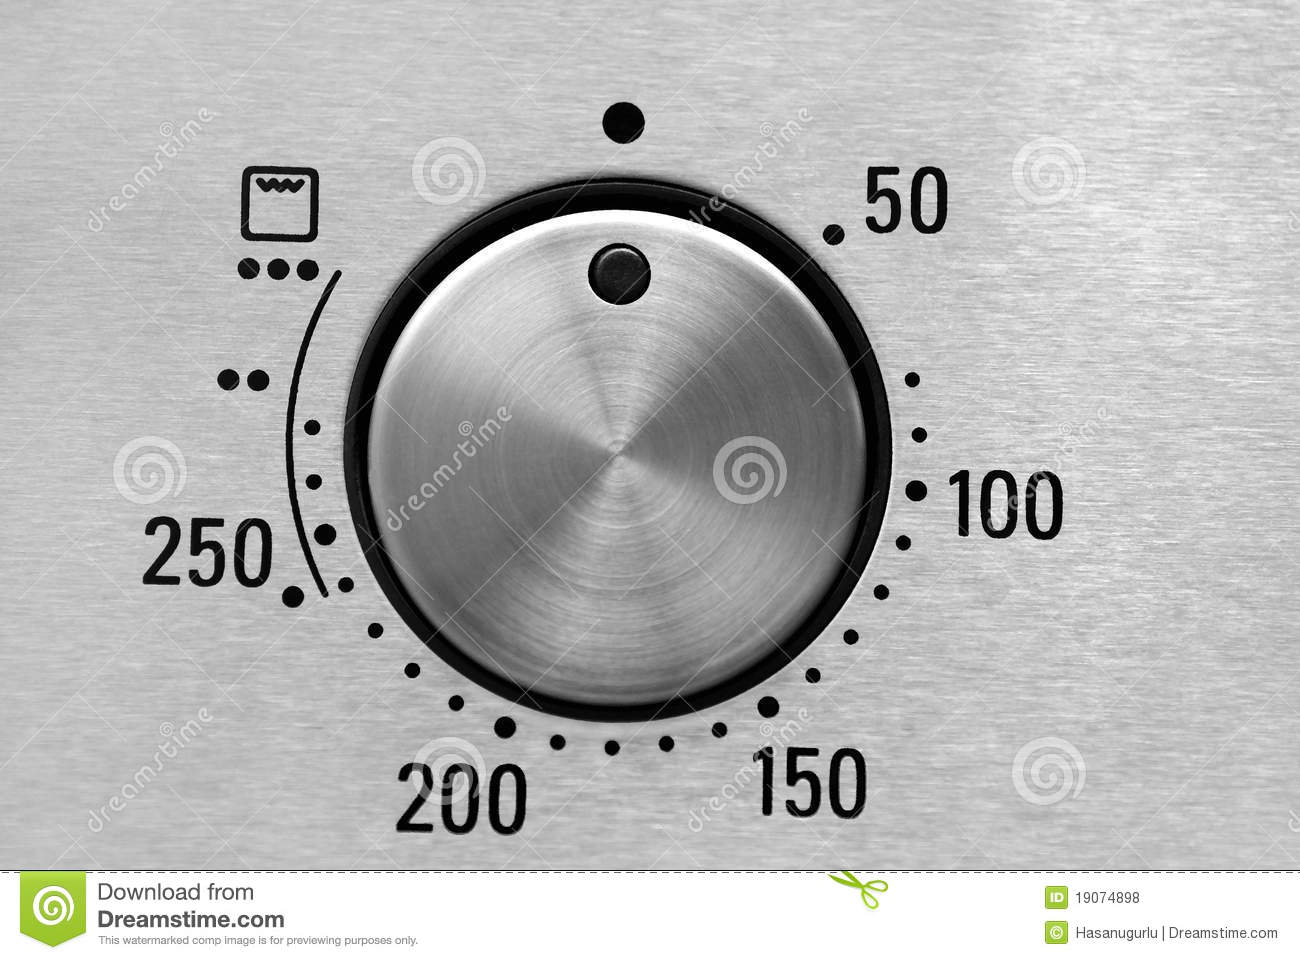 Oven Temperature Royalty Free Stock Photos Image: 19074898 #85A724